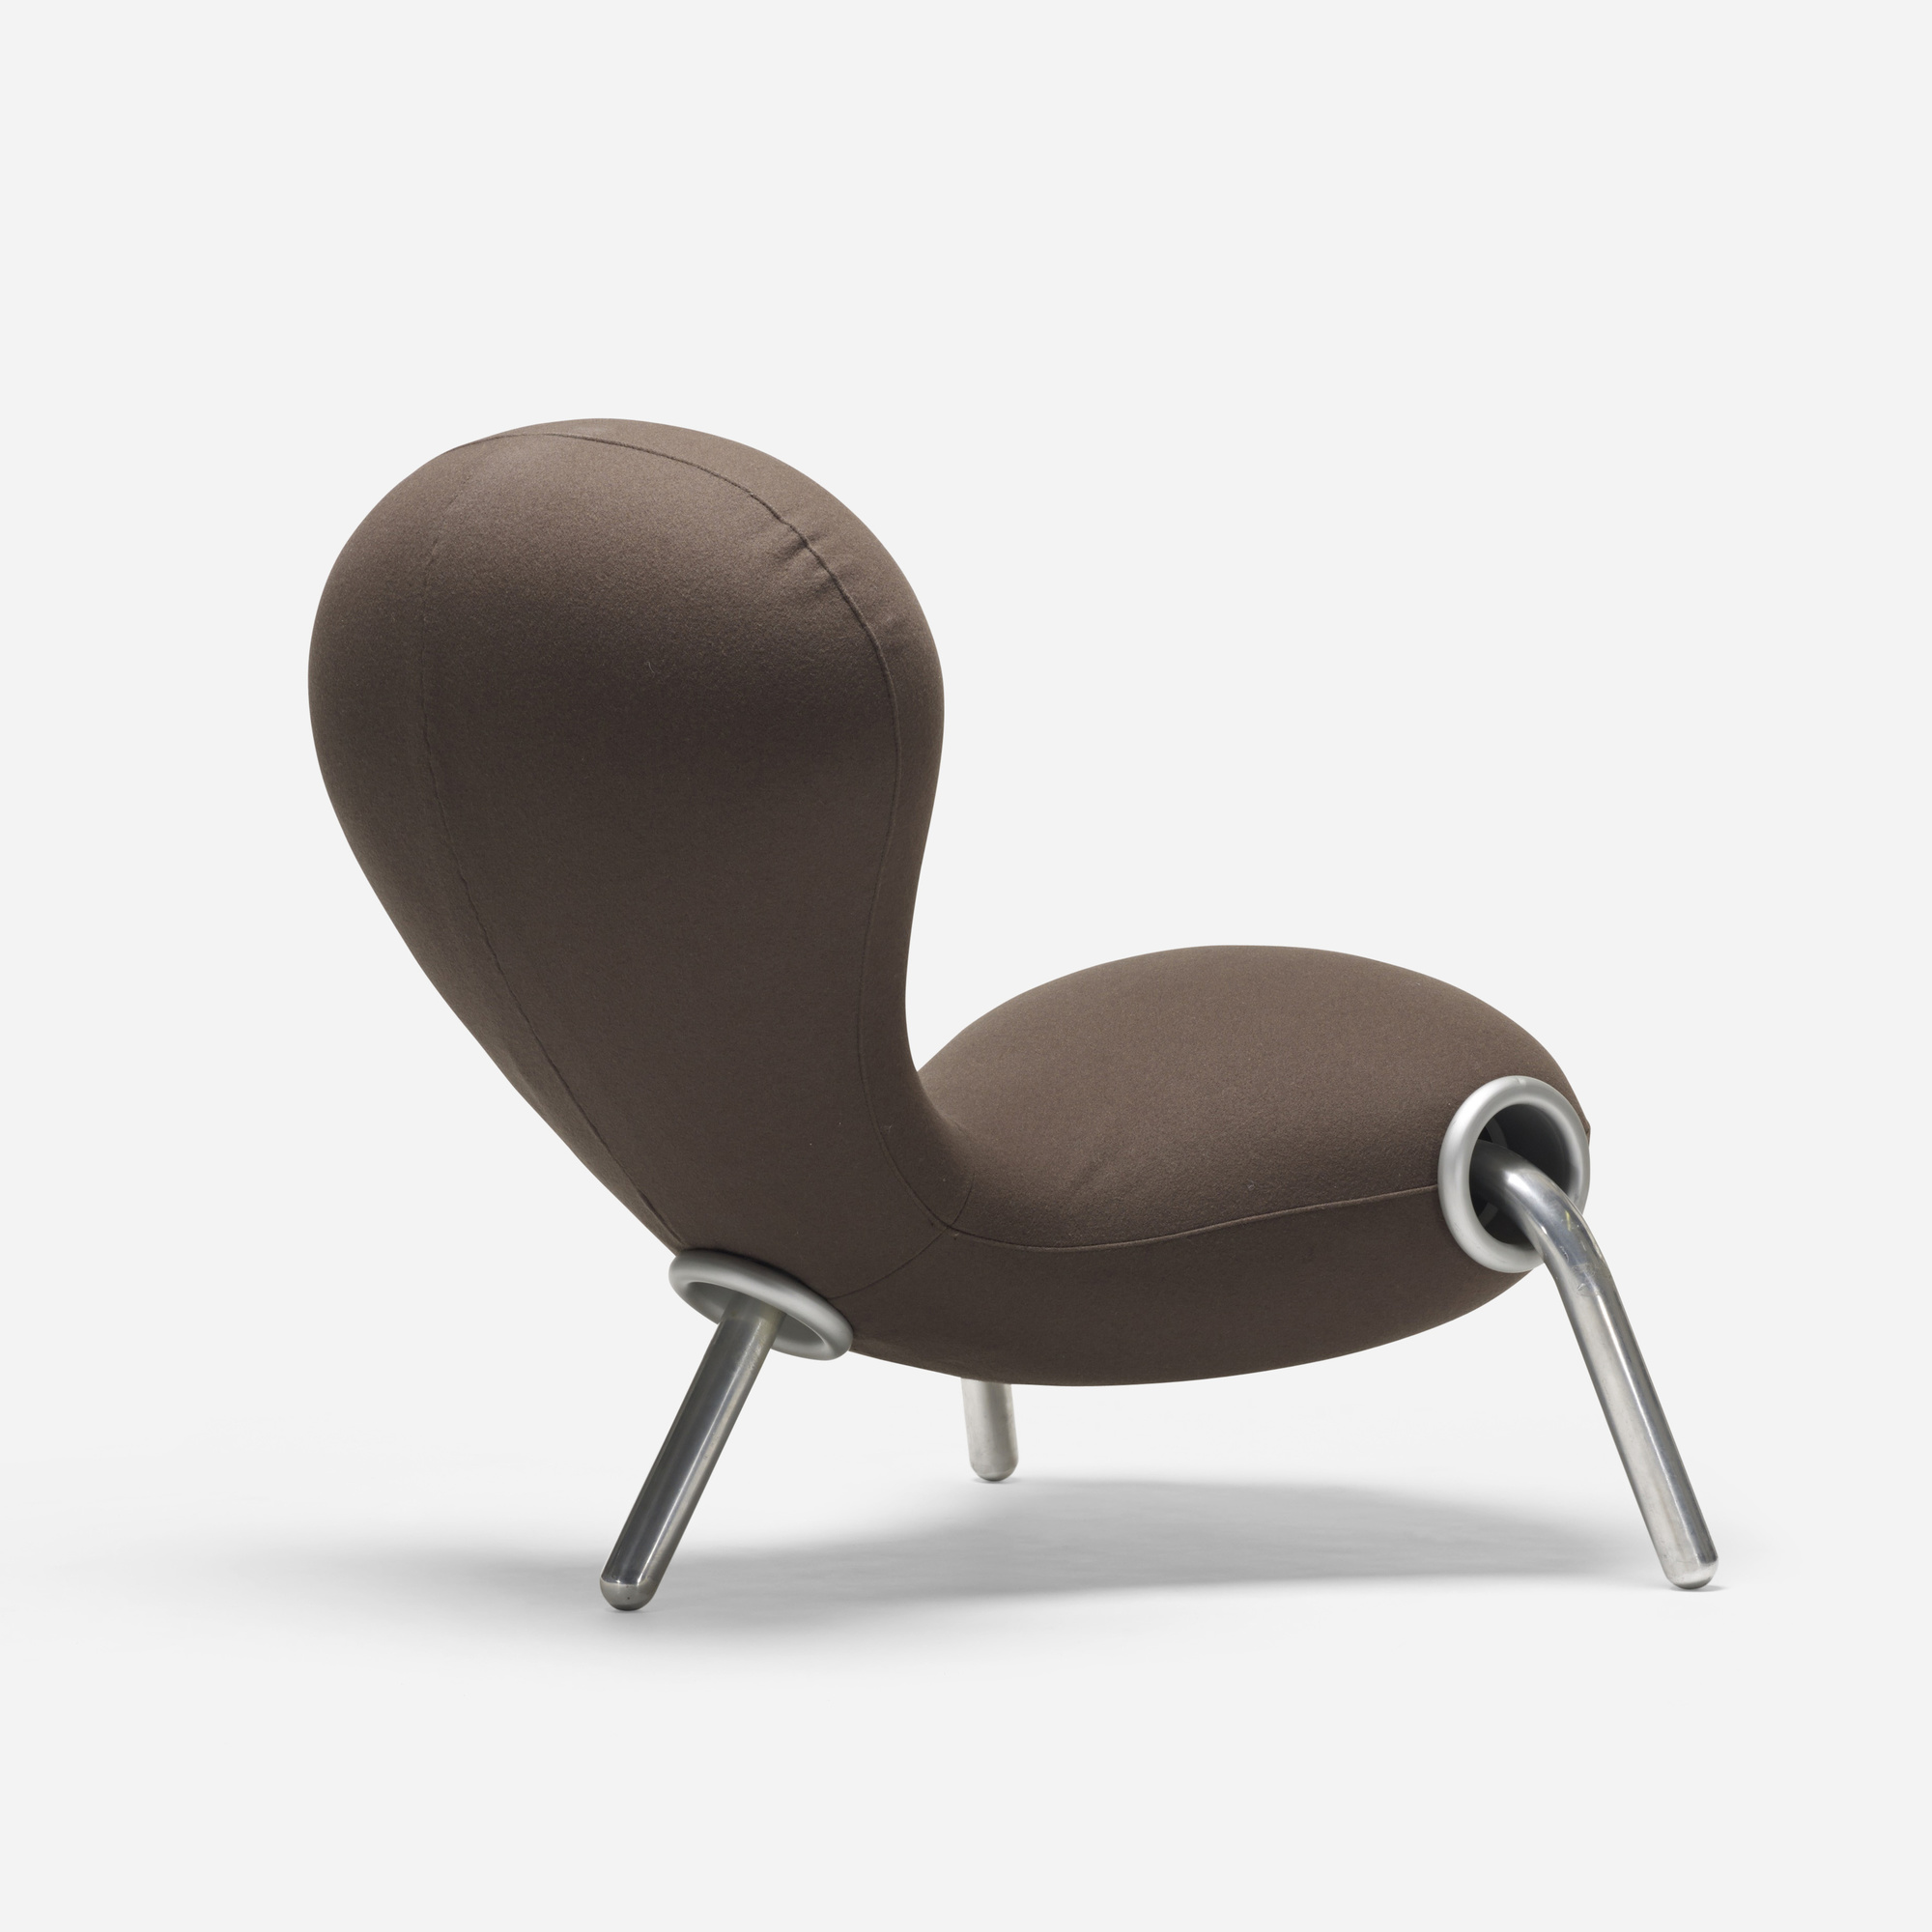 216: Marc Newson / Embryo chair (2 of 2)